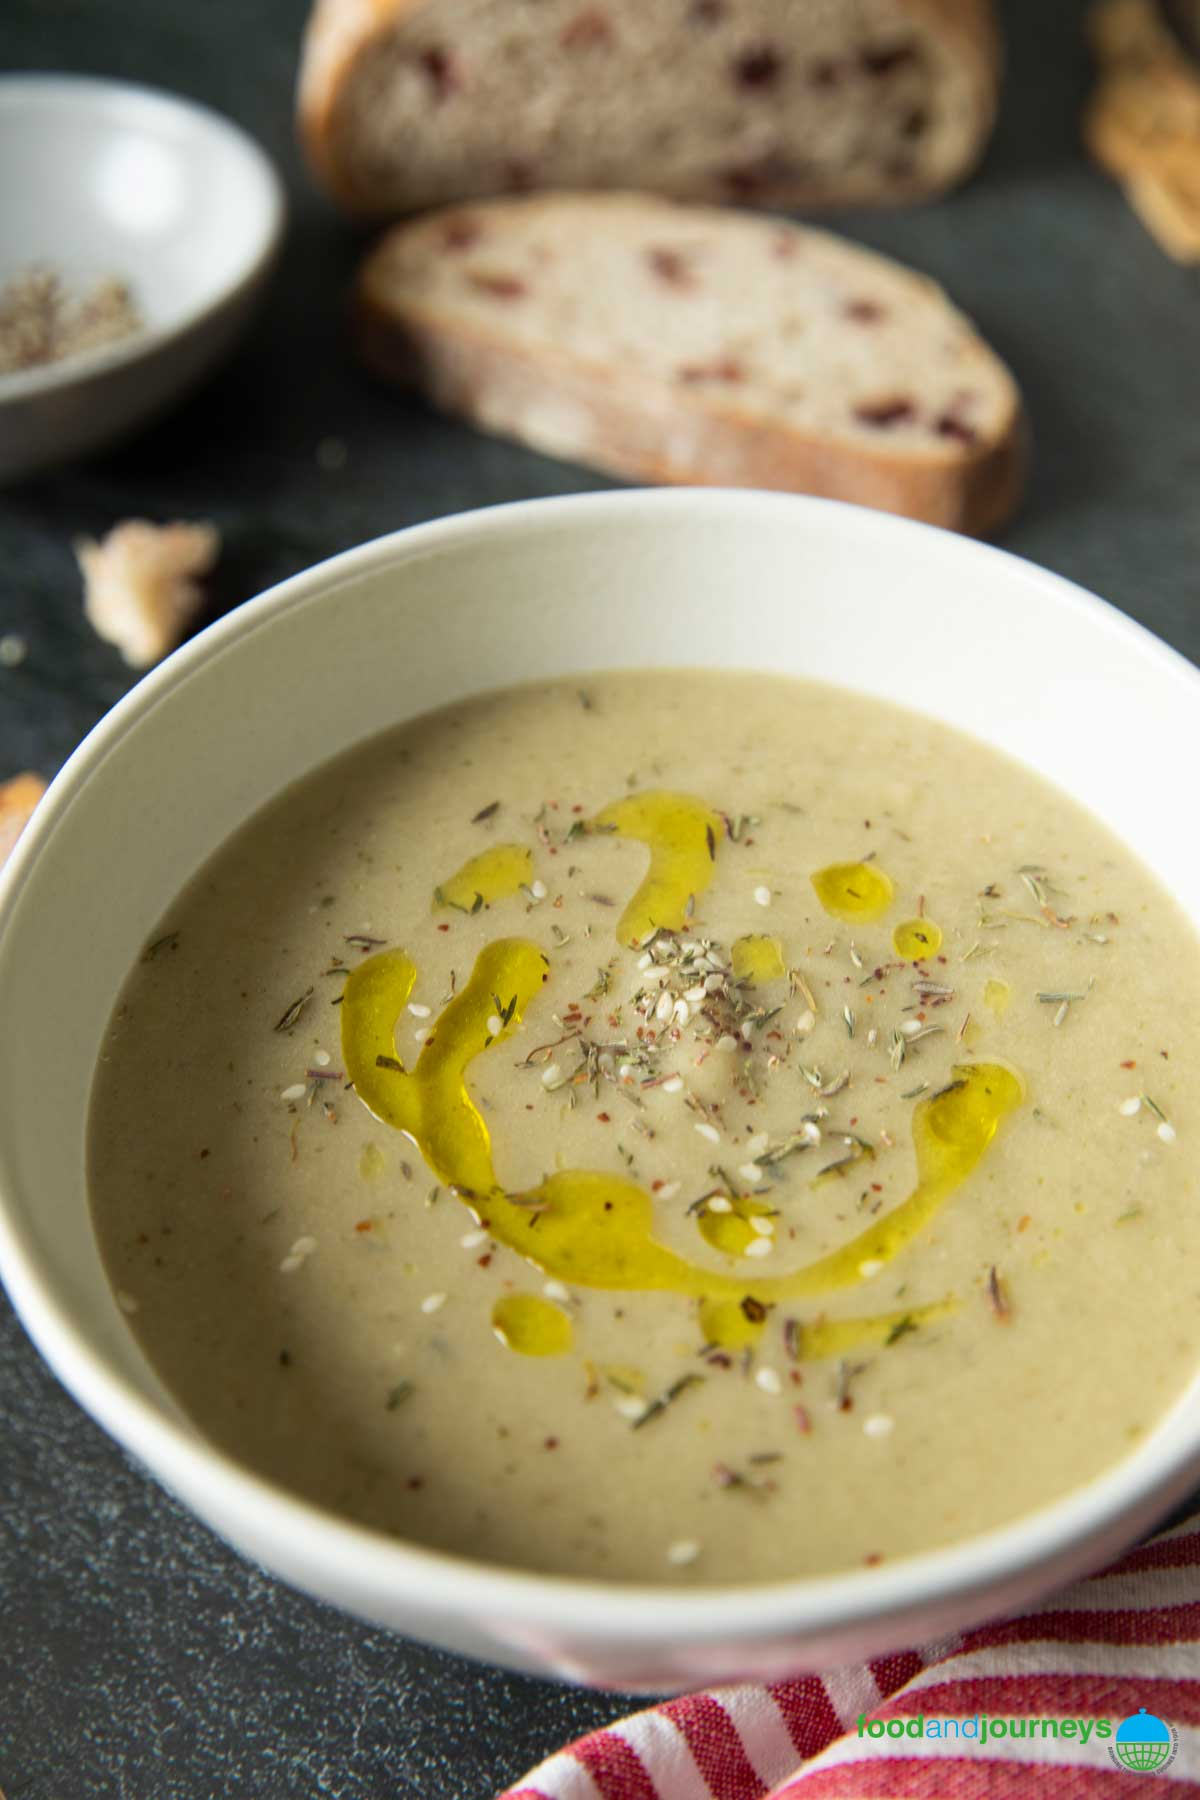 A closer shot of a serving of Turkish-Style Roasted Eggplant Soup, highlighting the texture of the soup.